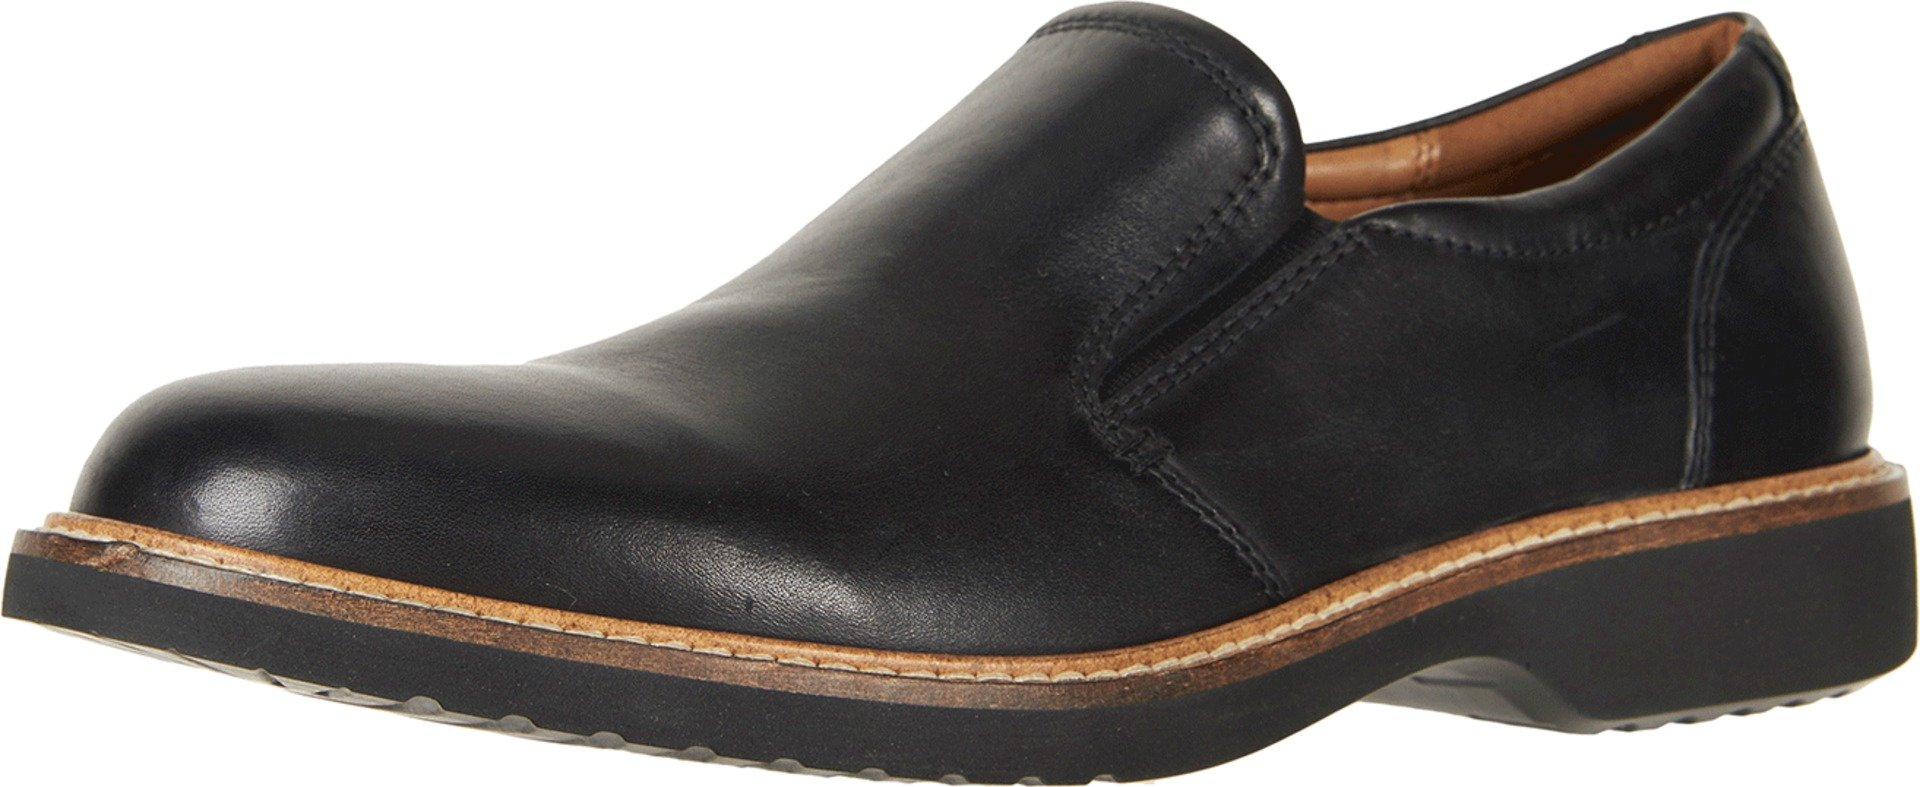 ECCO Men's Ian Casual Slip-on Loafer, Black, 43 EU/9-9.5 M US by ECCO